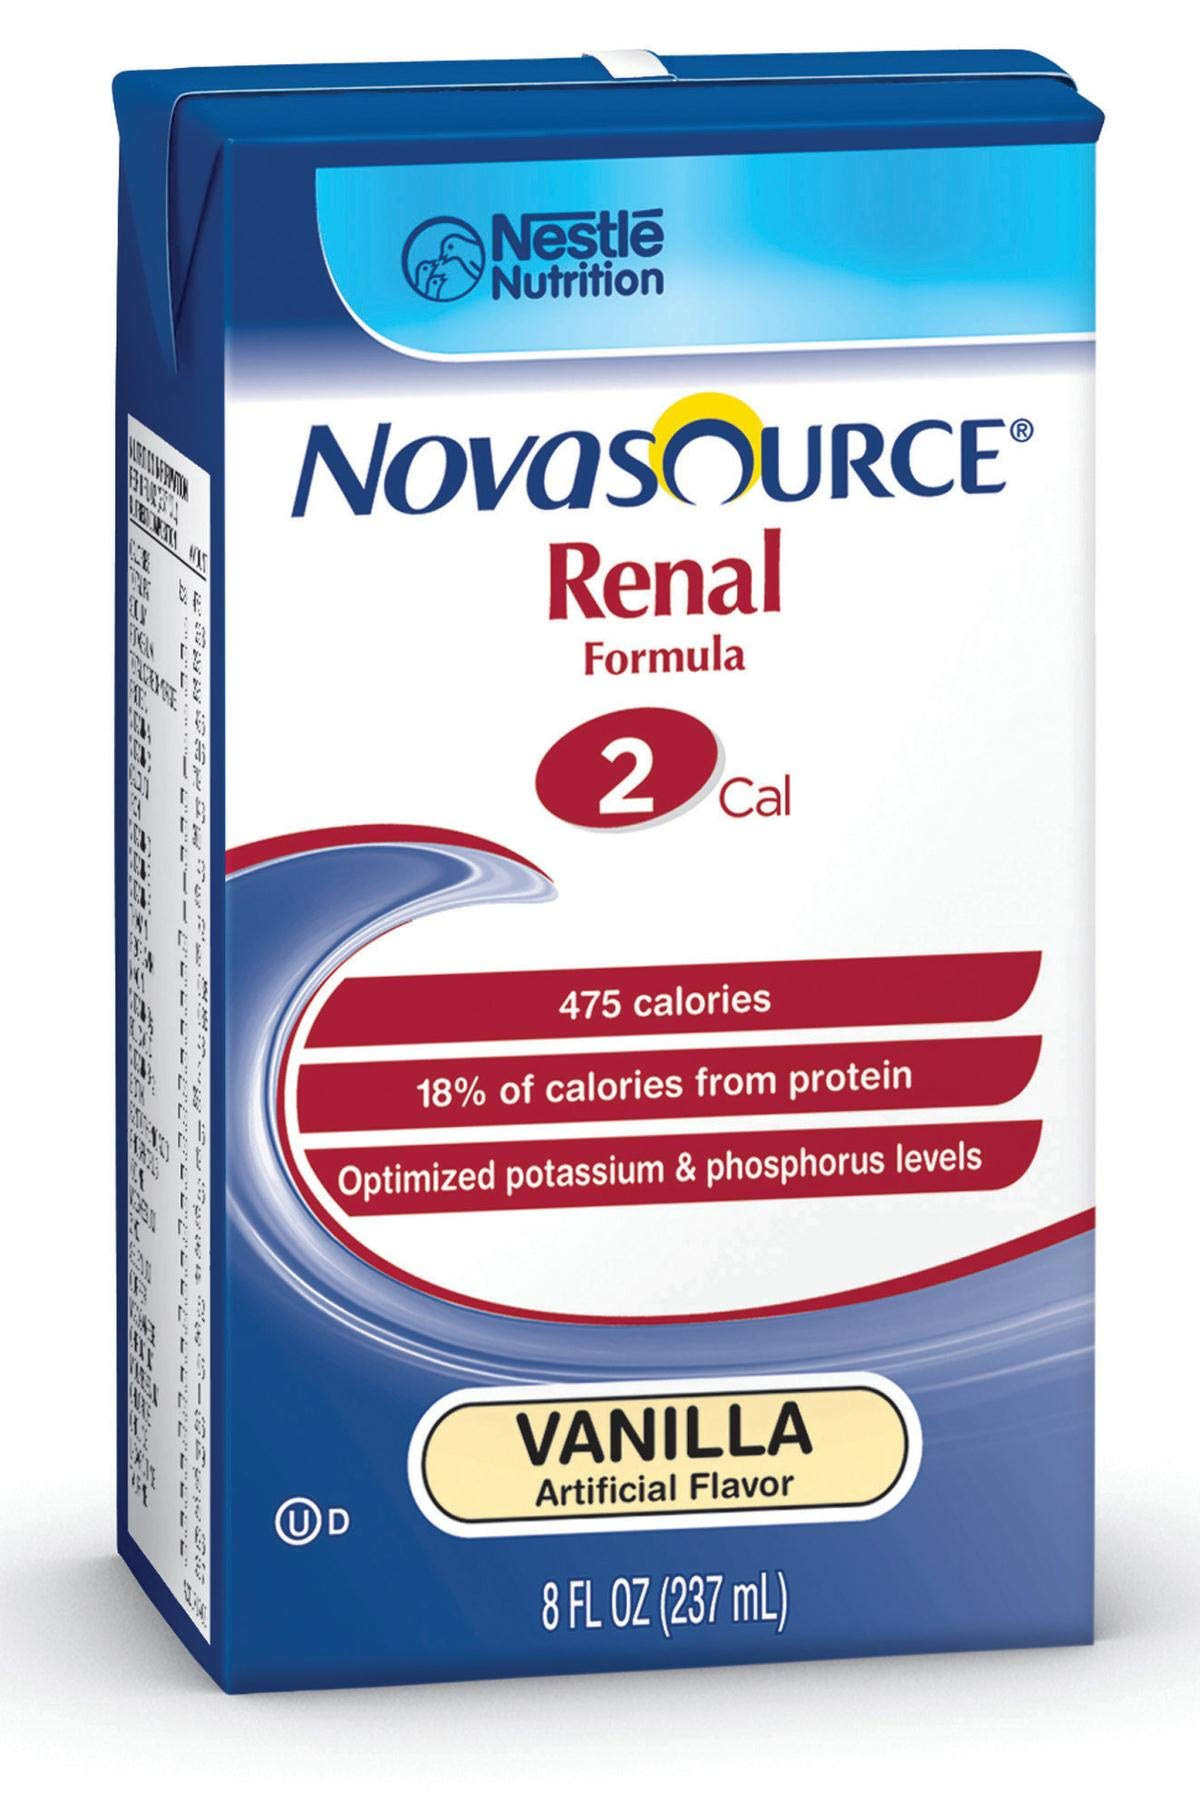 Nestle Clinical Nutrition Novasource Renal Nutritional Supplement - Doy351100, 1 Pound